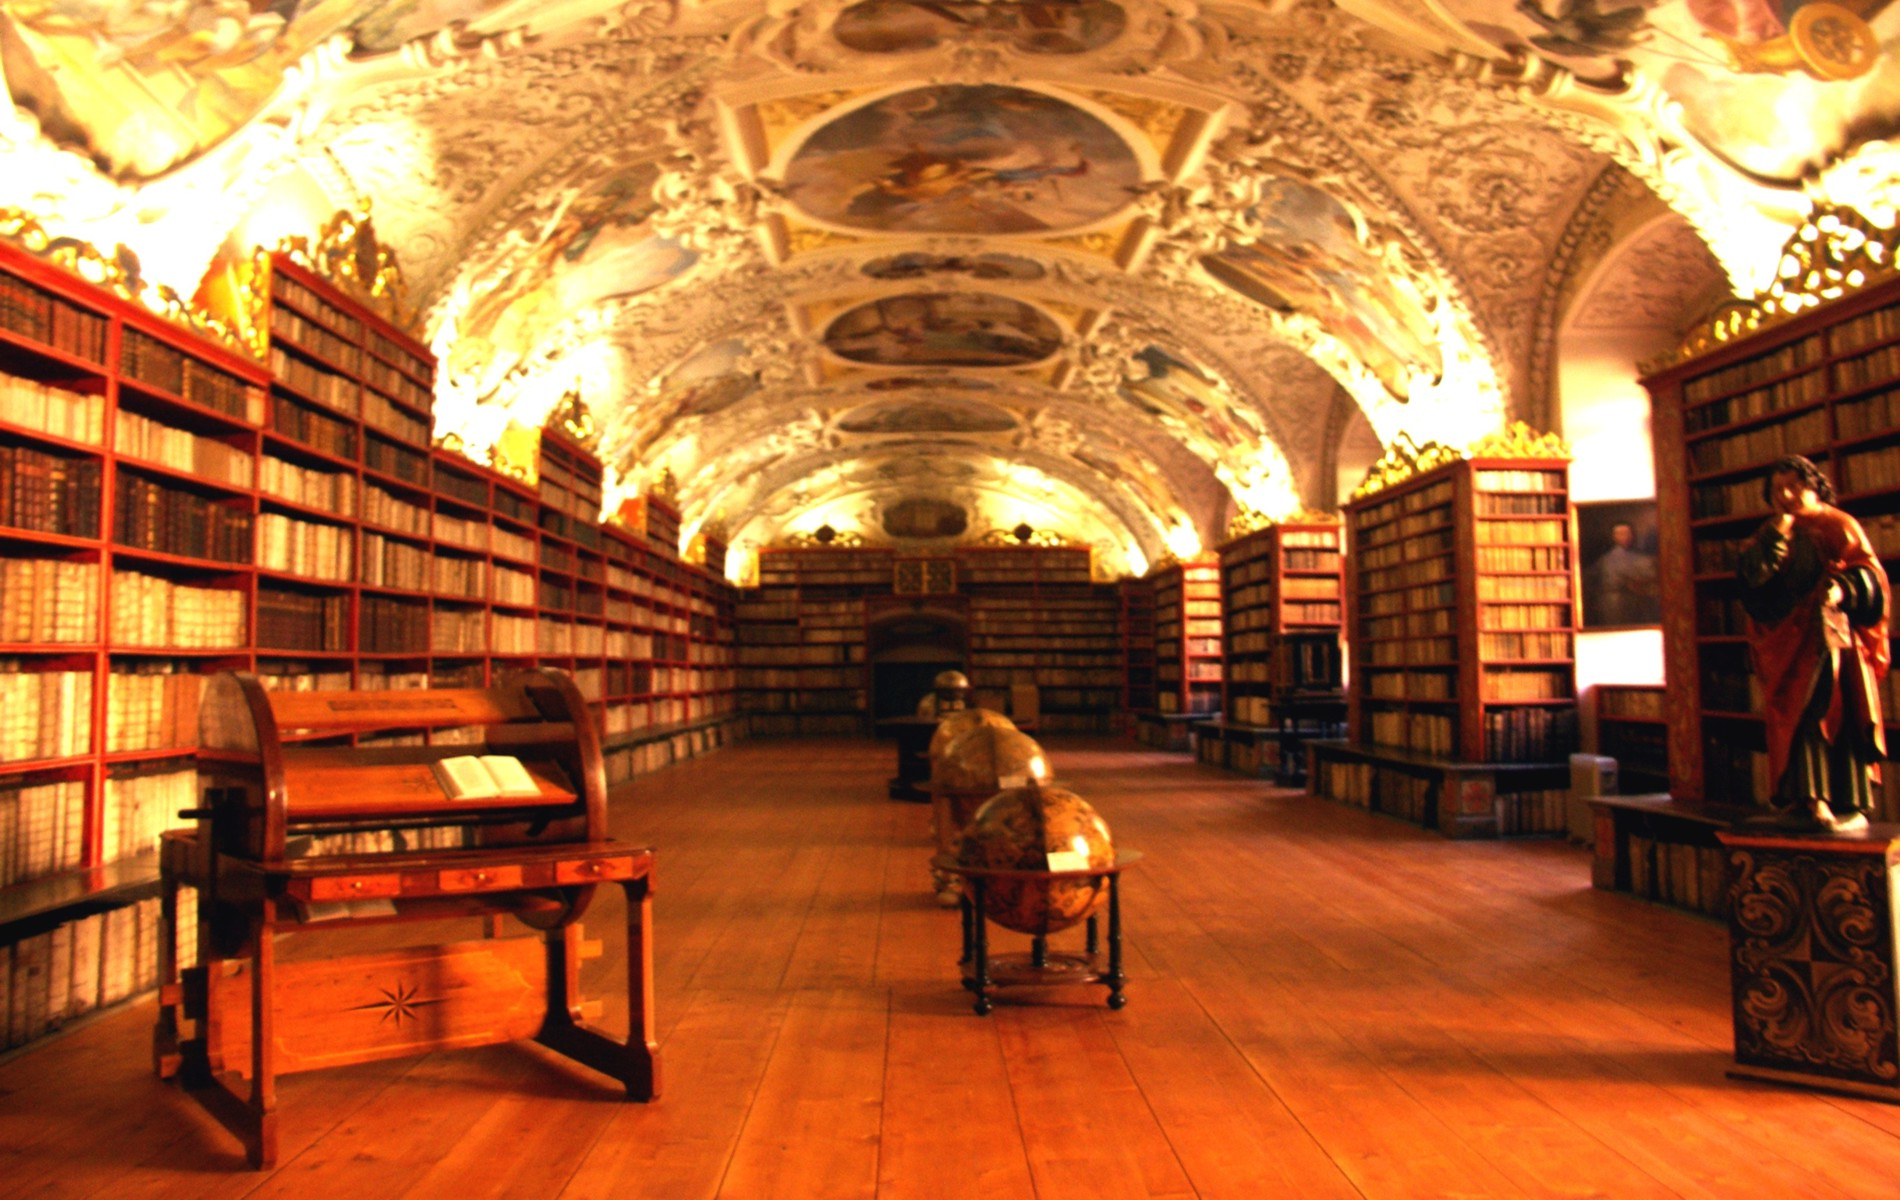 Library Background Image